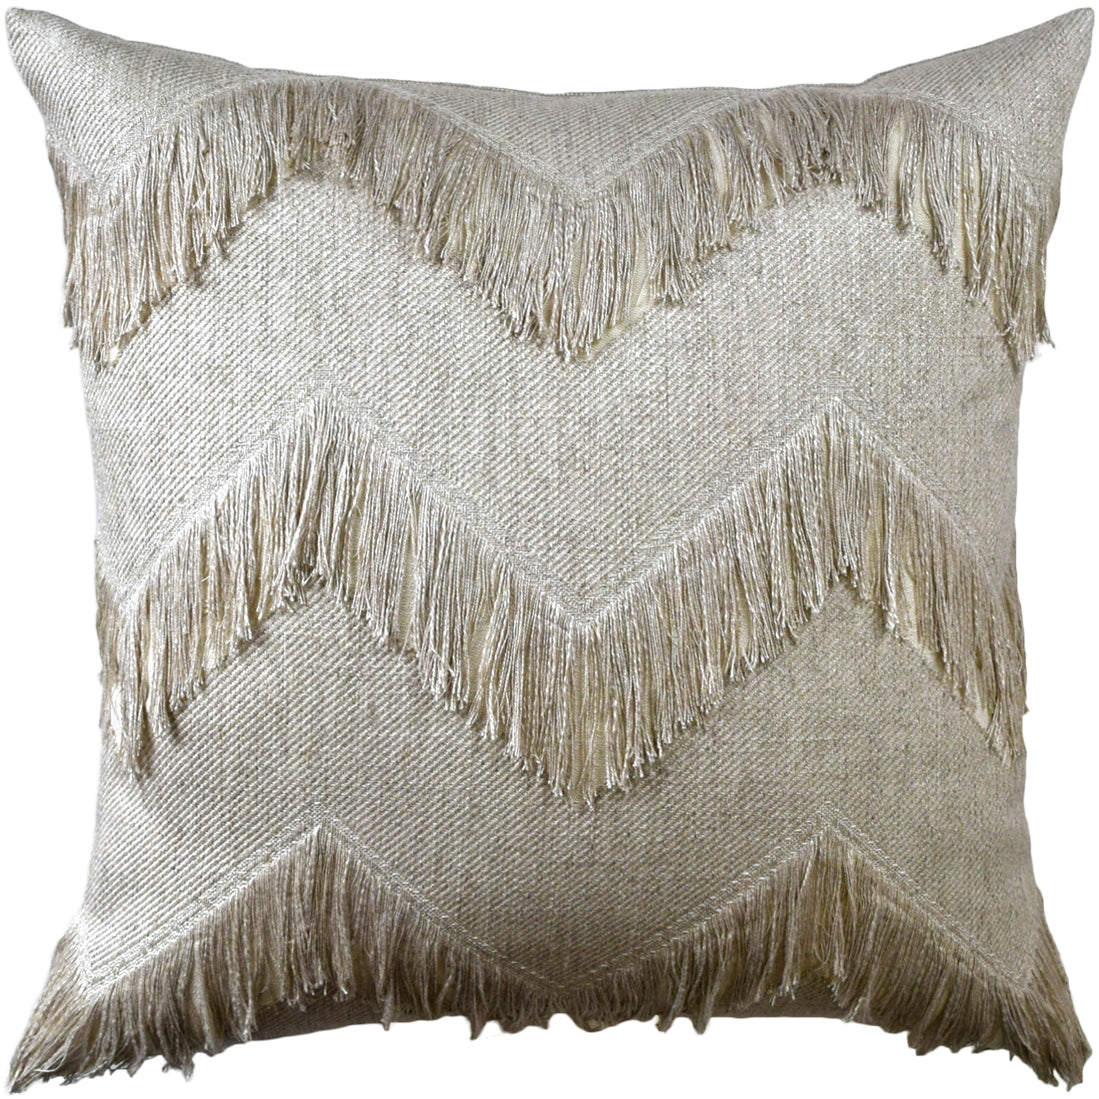 Ryan Studio Sonora Pillow in Natural